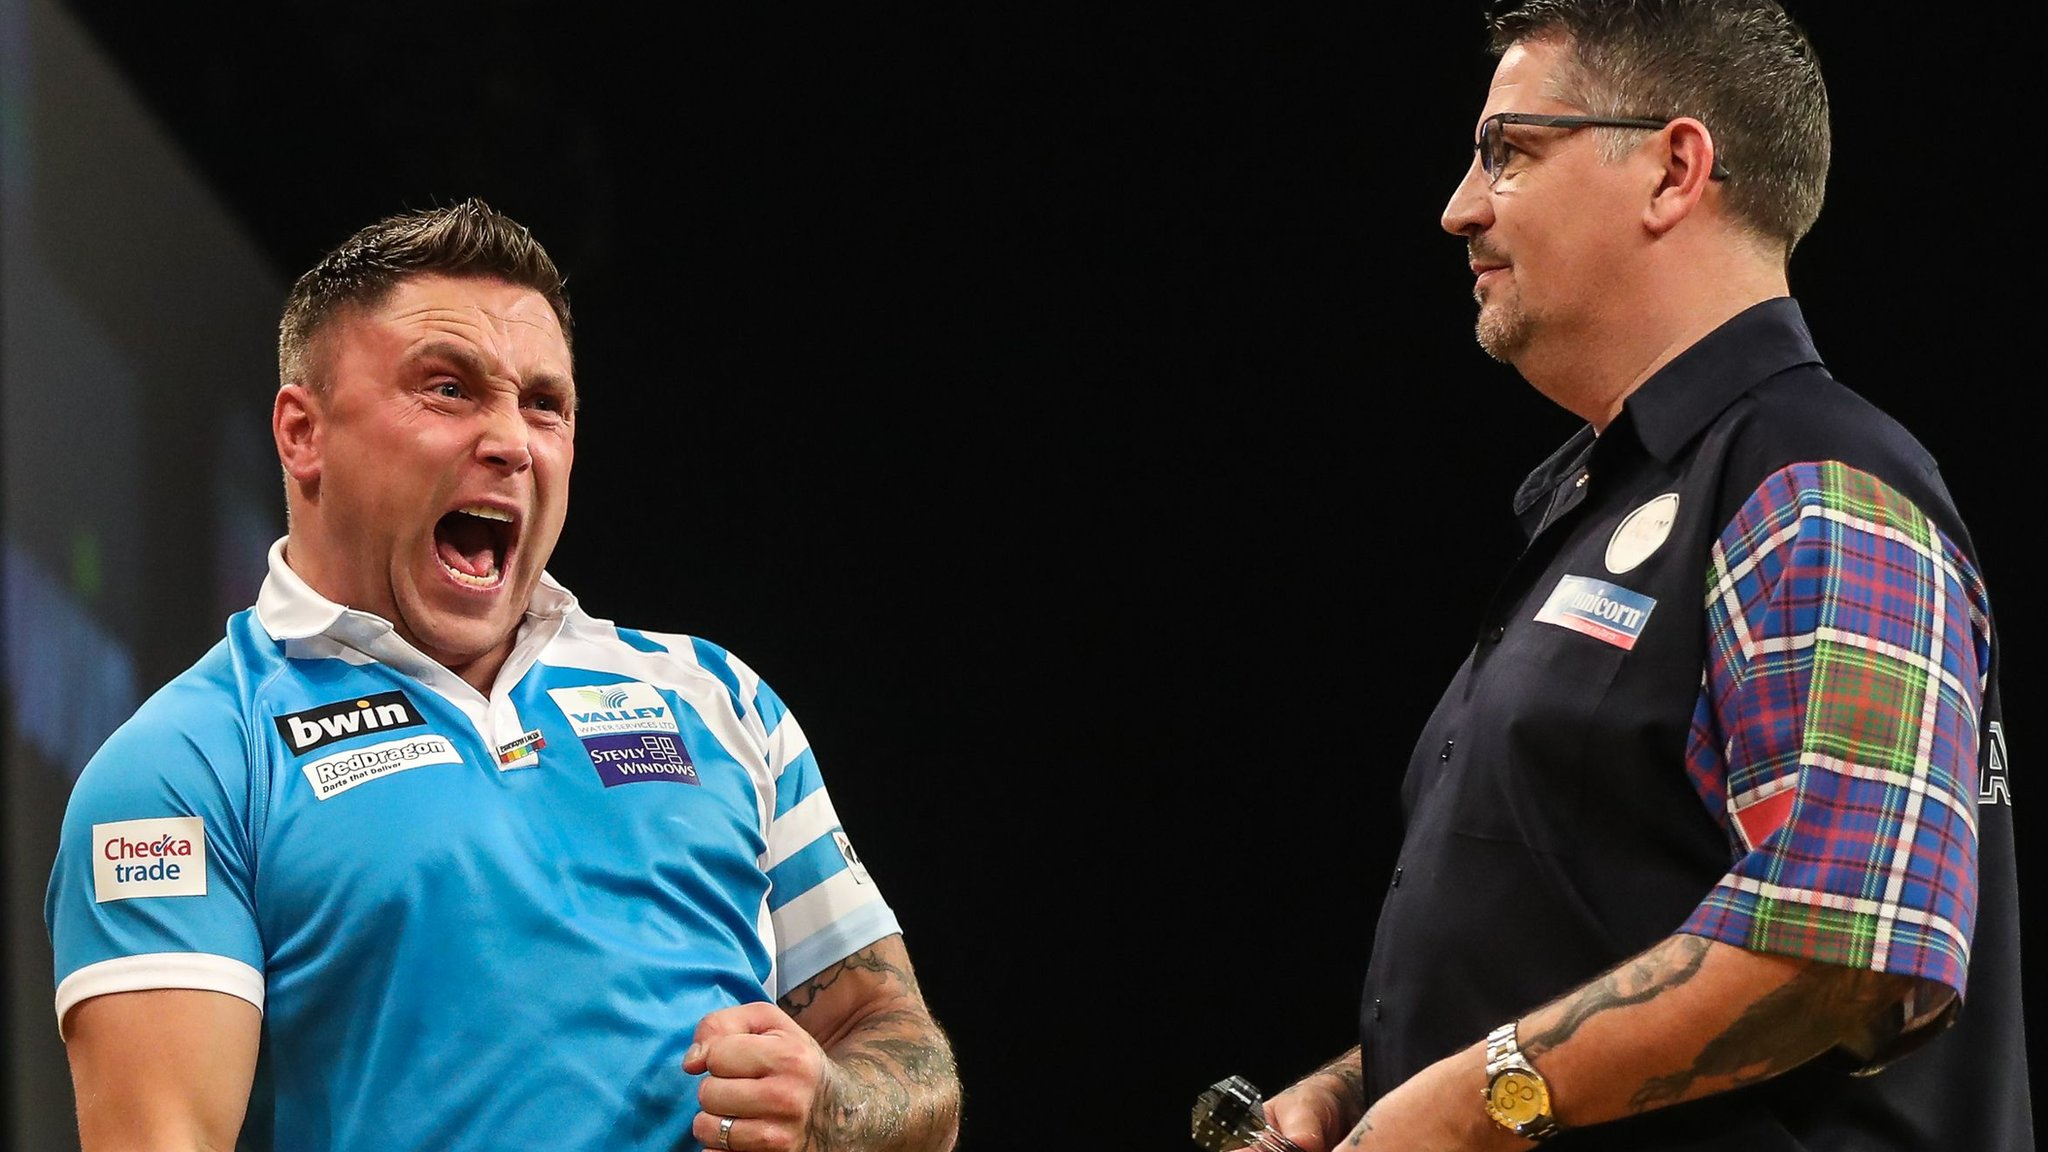 Grand Slam of Darts: Gerwyn Price beats Gary Anderson in bad-tempered final